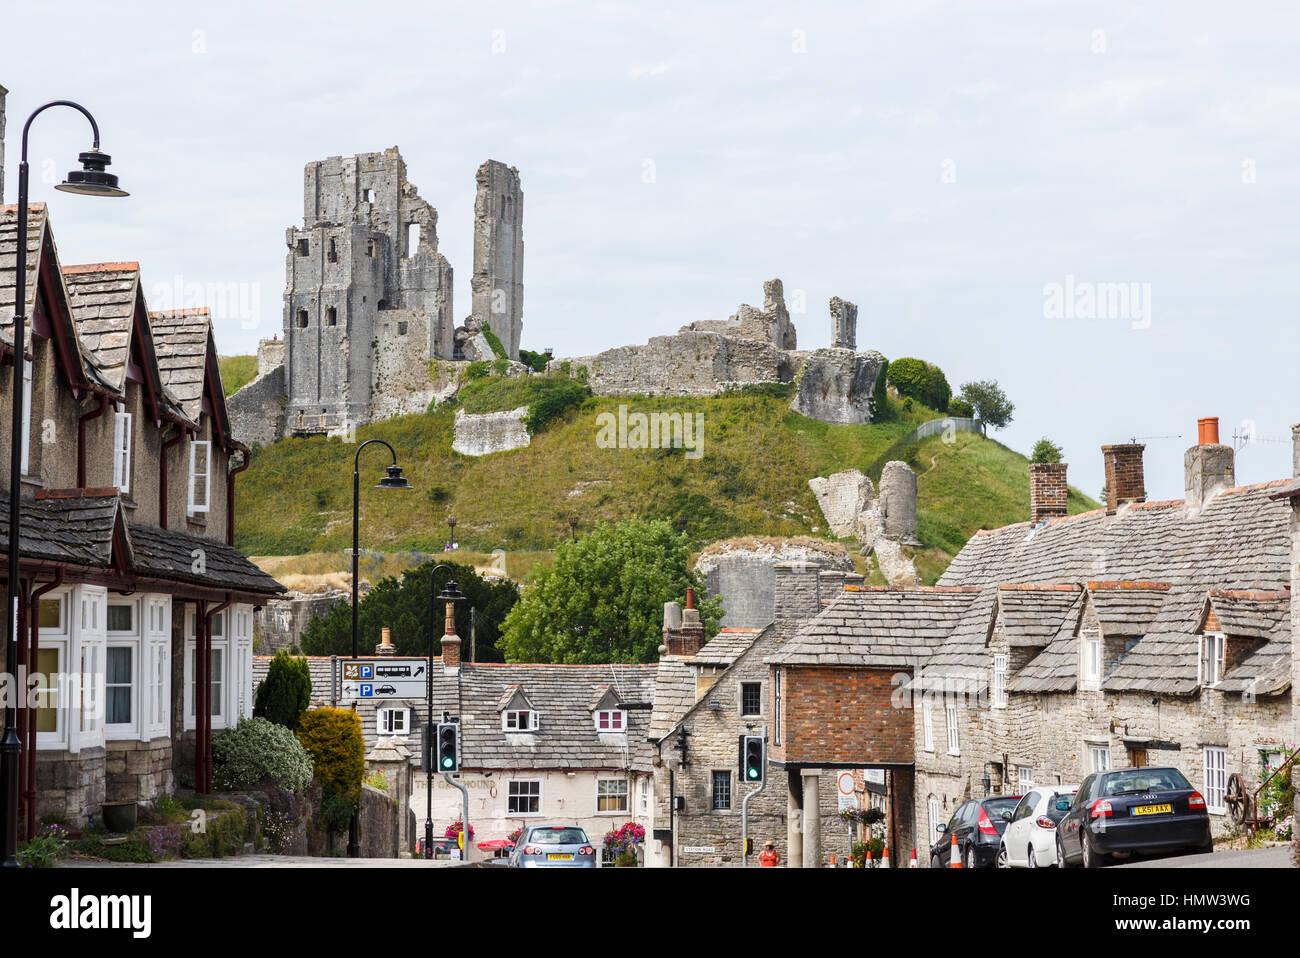 The hilltop ruins of Corfe Castle, survivor of the English Civil War, in the village of Corfe, Dorset, south-west - Stock Image